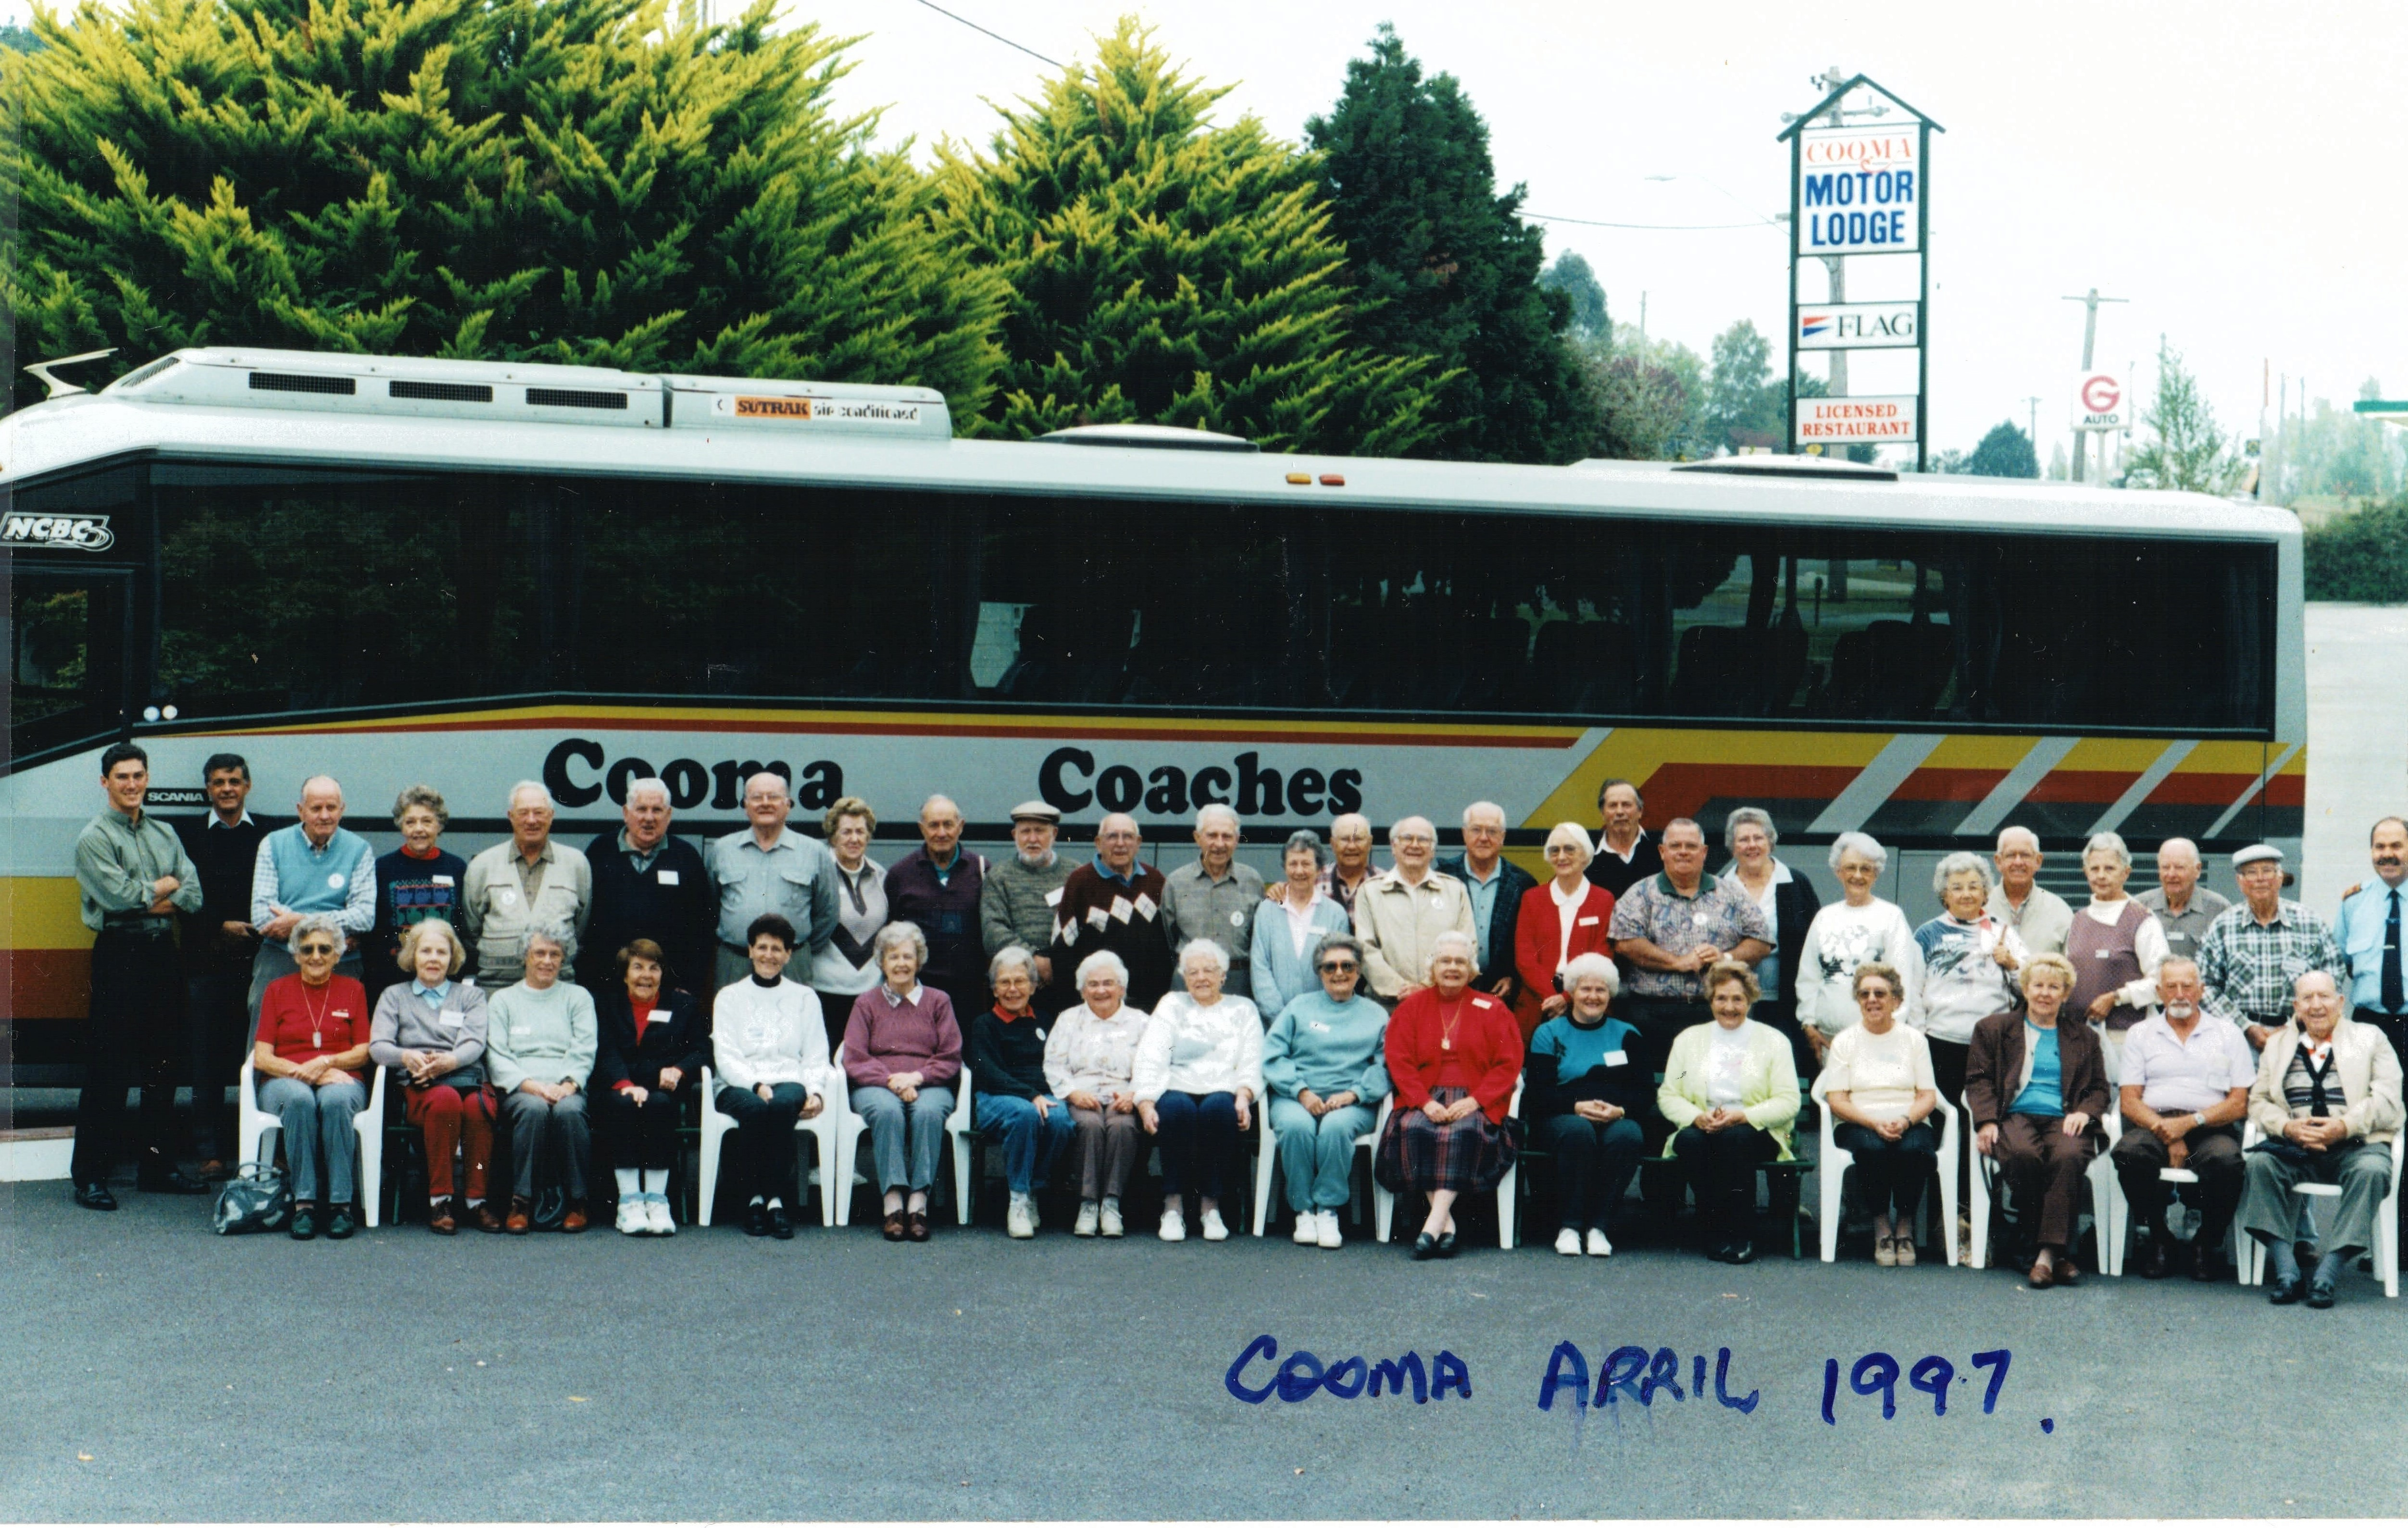 1997 Activities Holiday to Cooma April 9